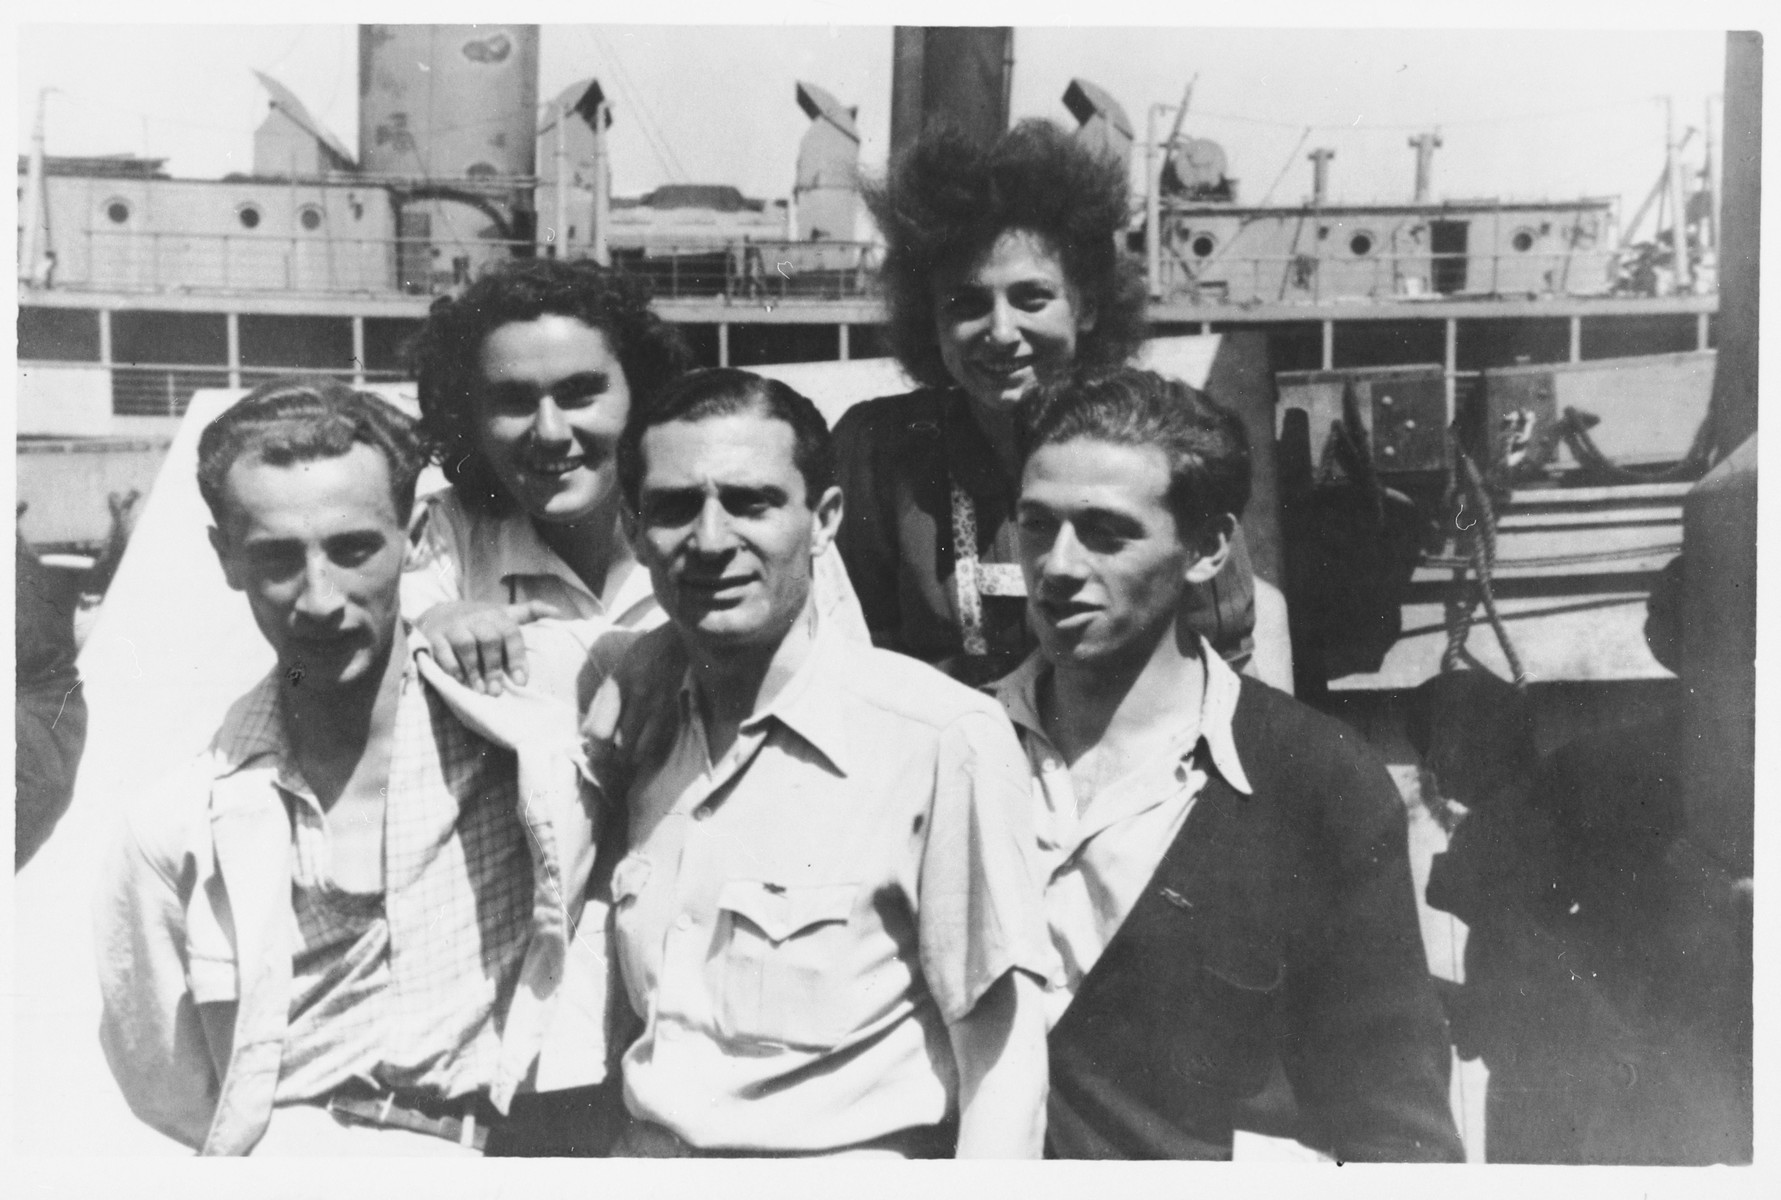 Group portrait of members of the Armée Juive French Jewish resistance at a reunion in Palestine in Kibbutz Sde Eliyahu.  Among those pictured is Simon Levitte, the head of Armée Juive (center).